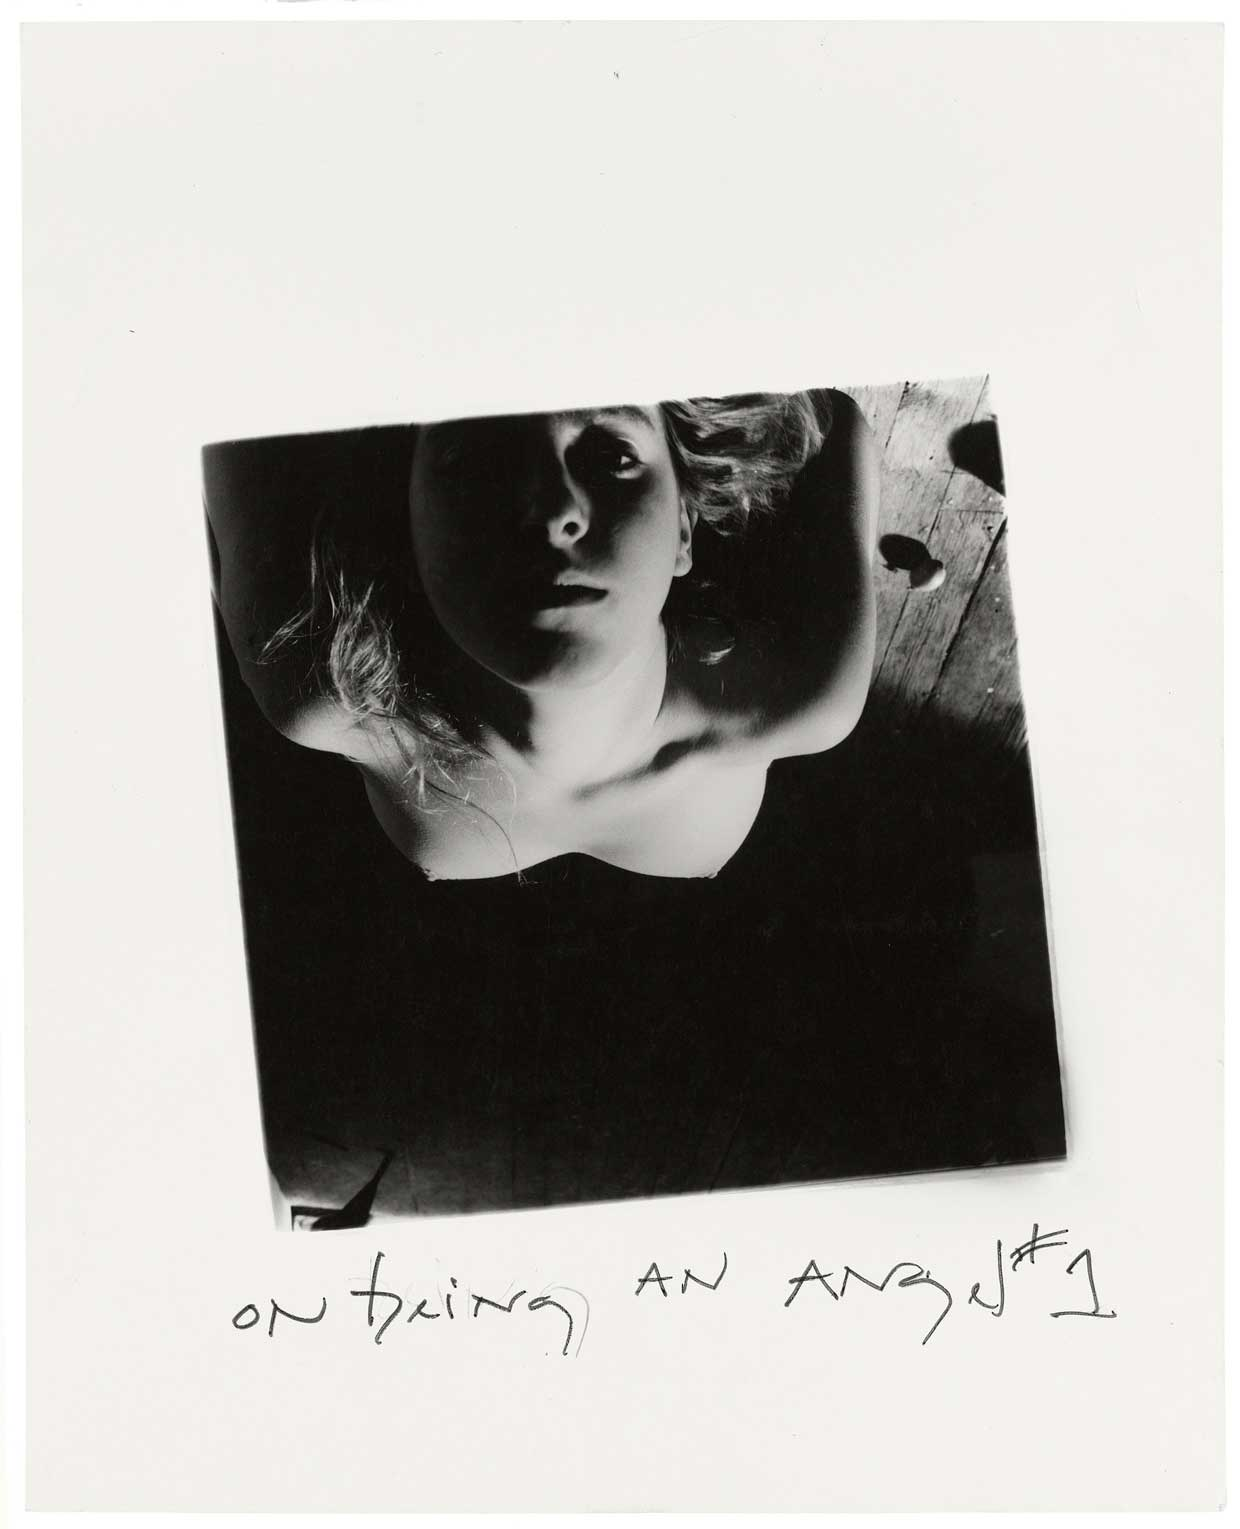 Francesca-Woodman-On-Being-an-Angel-1-Providence-Rhode-Island-1977-C-George-and-Betty-Woodman